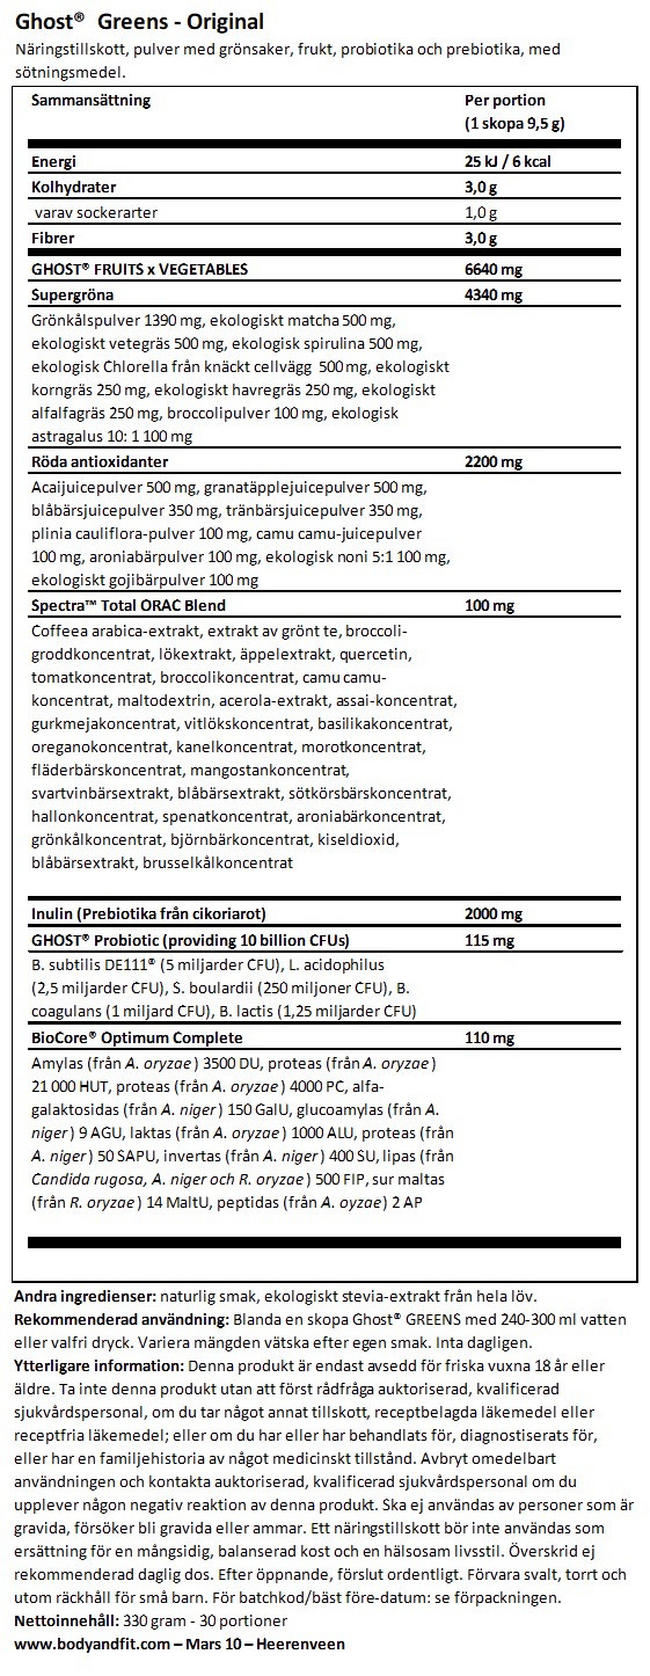 Ghost Greens Nutritional Information 1